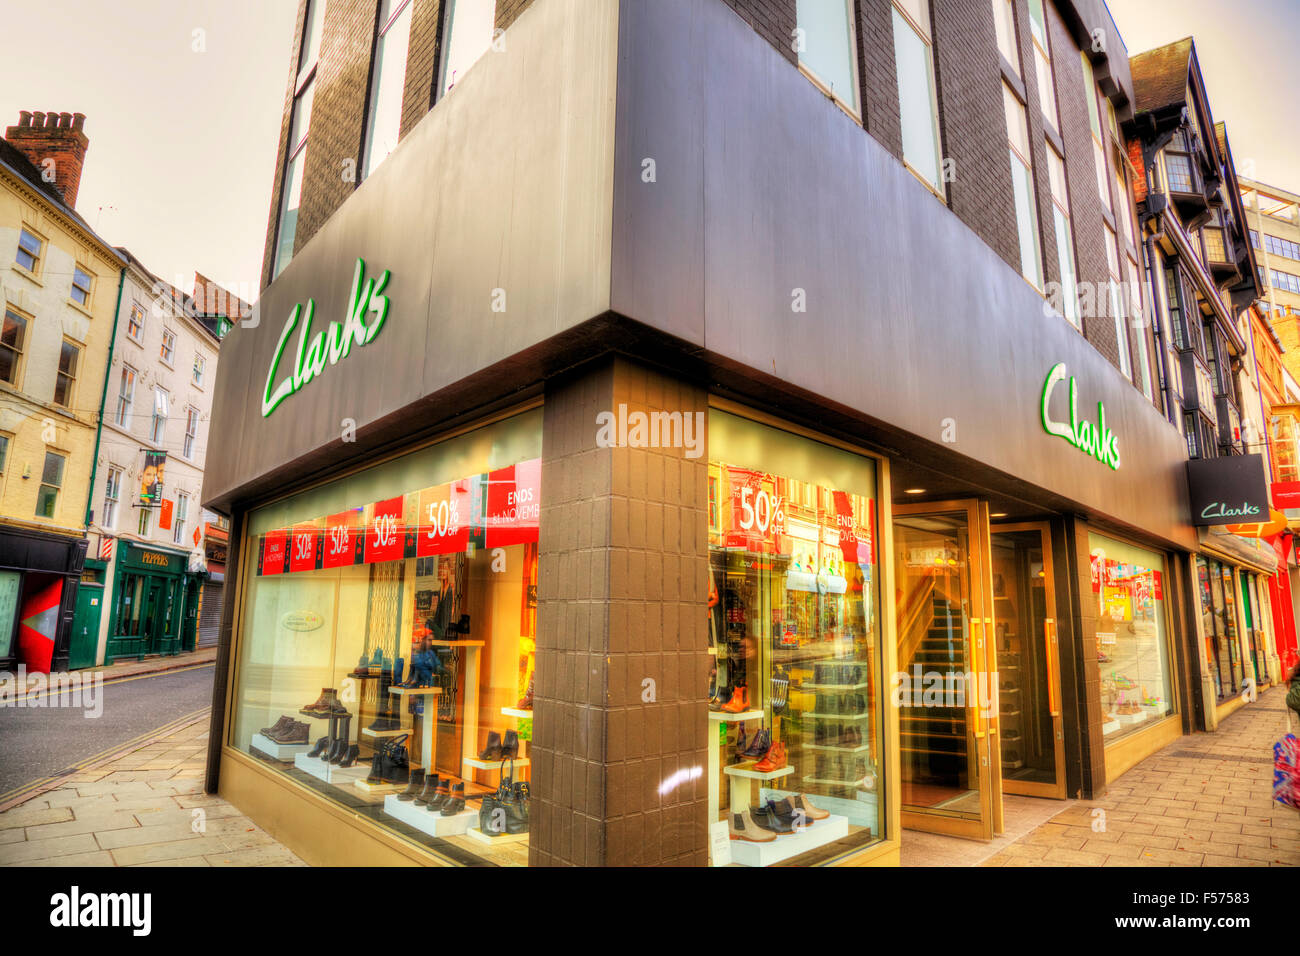 Clarks Shoe Shoes Shop Store Name Sign Building Exterior Facade Stock Photo 89282931 Alamy